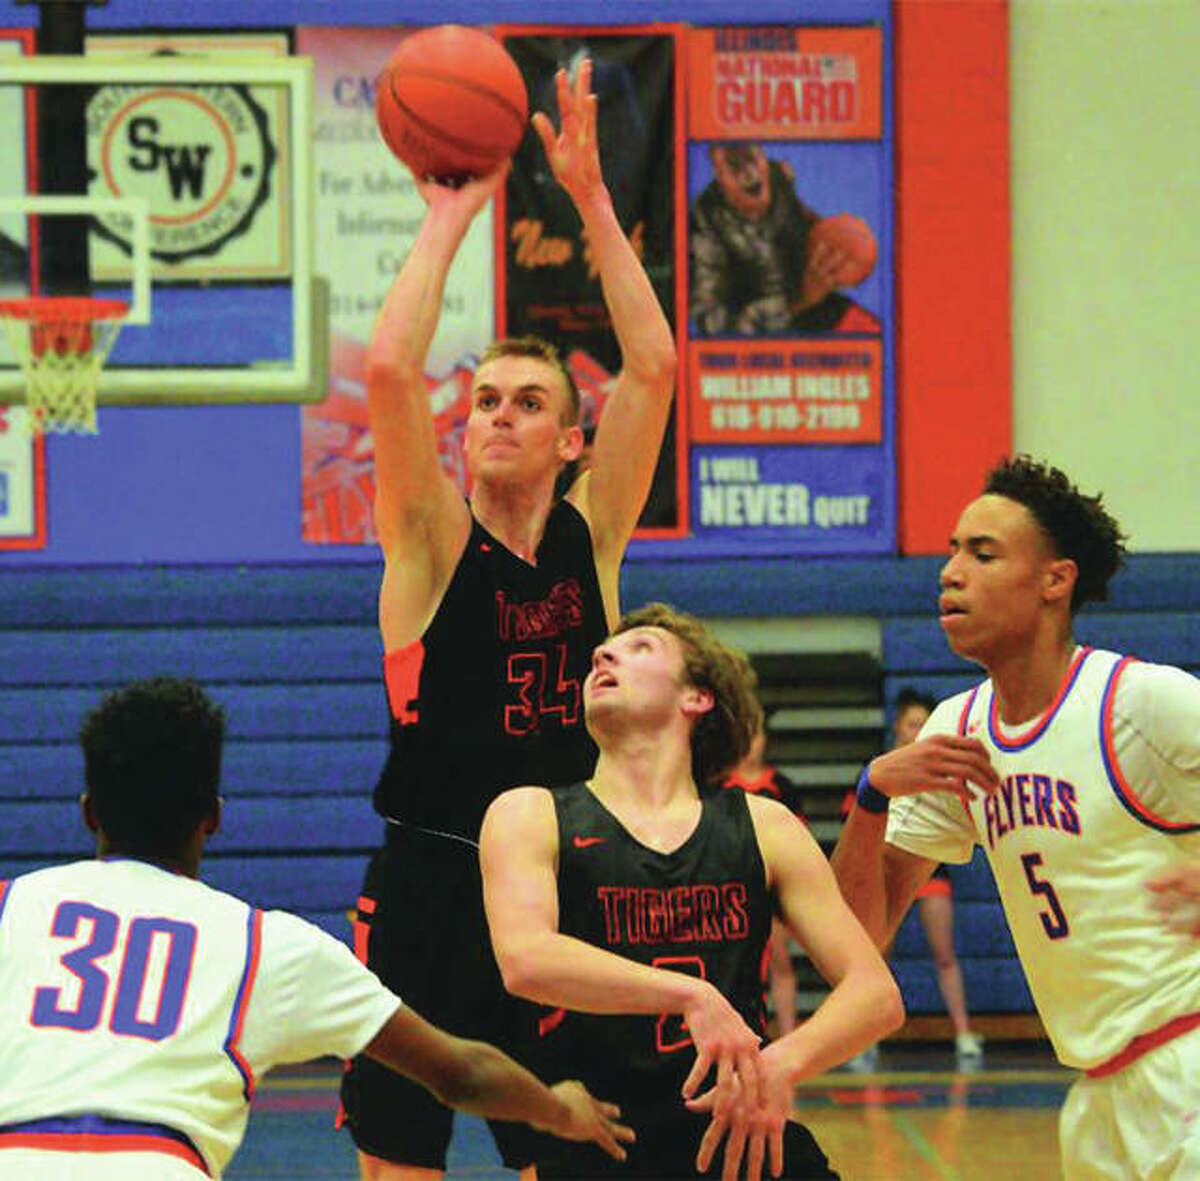 Edwardsville's Caleb Strohmeier (back) shoots behind a screen set by teammate Jack Marinko while East St. Louis' Joe Reece (right) and Imunique Williams (30) defend during Wednesday night's Southwestern Conference boys basketball game in East St. Louis.